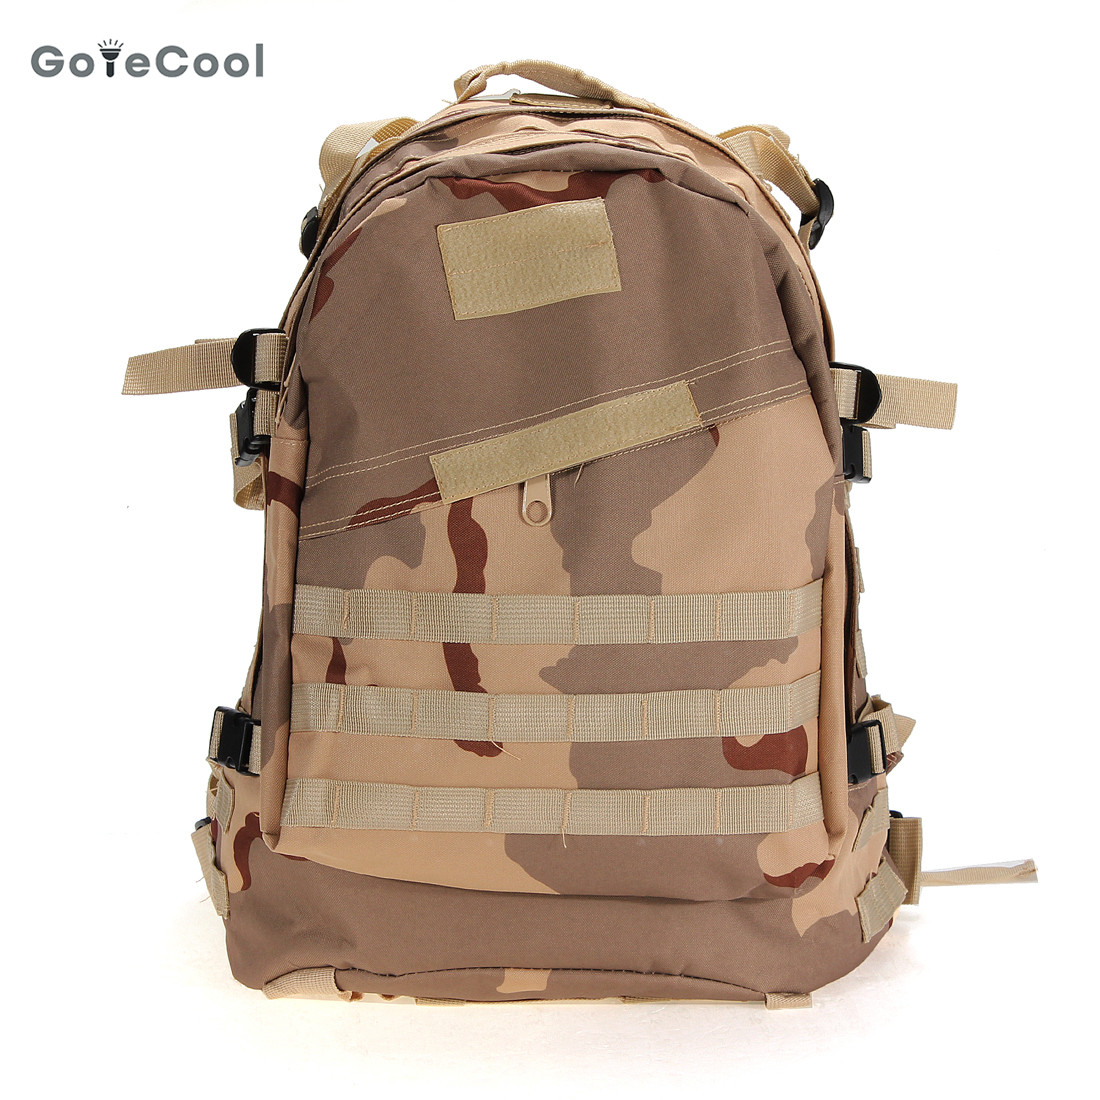 Excellent quality 55L 3D Outdoor Sport Military Tactical Backpack Rucksack Bag for Camping Traveling Hiking Trekking